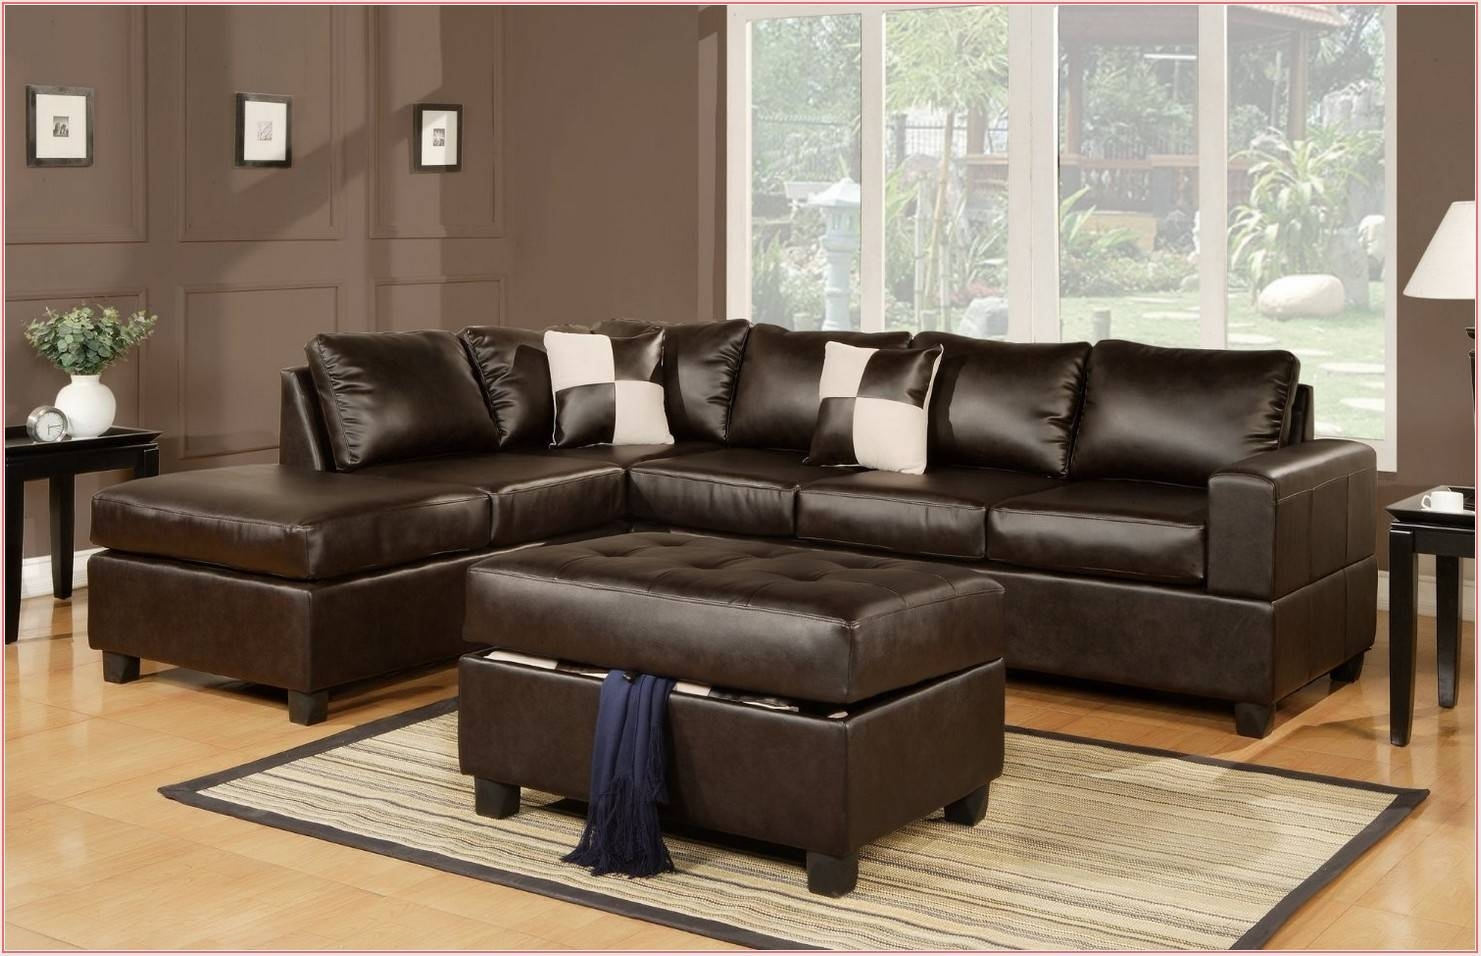 Best Backless Sectional Sofa 24 For Your Sofa Express Sectional Inside Backless Sectional Sofa (#9 of 12)